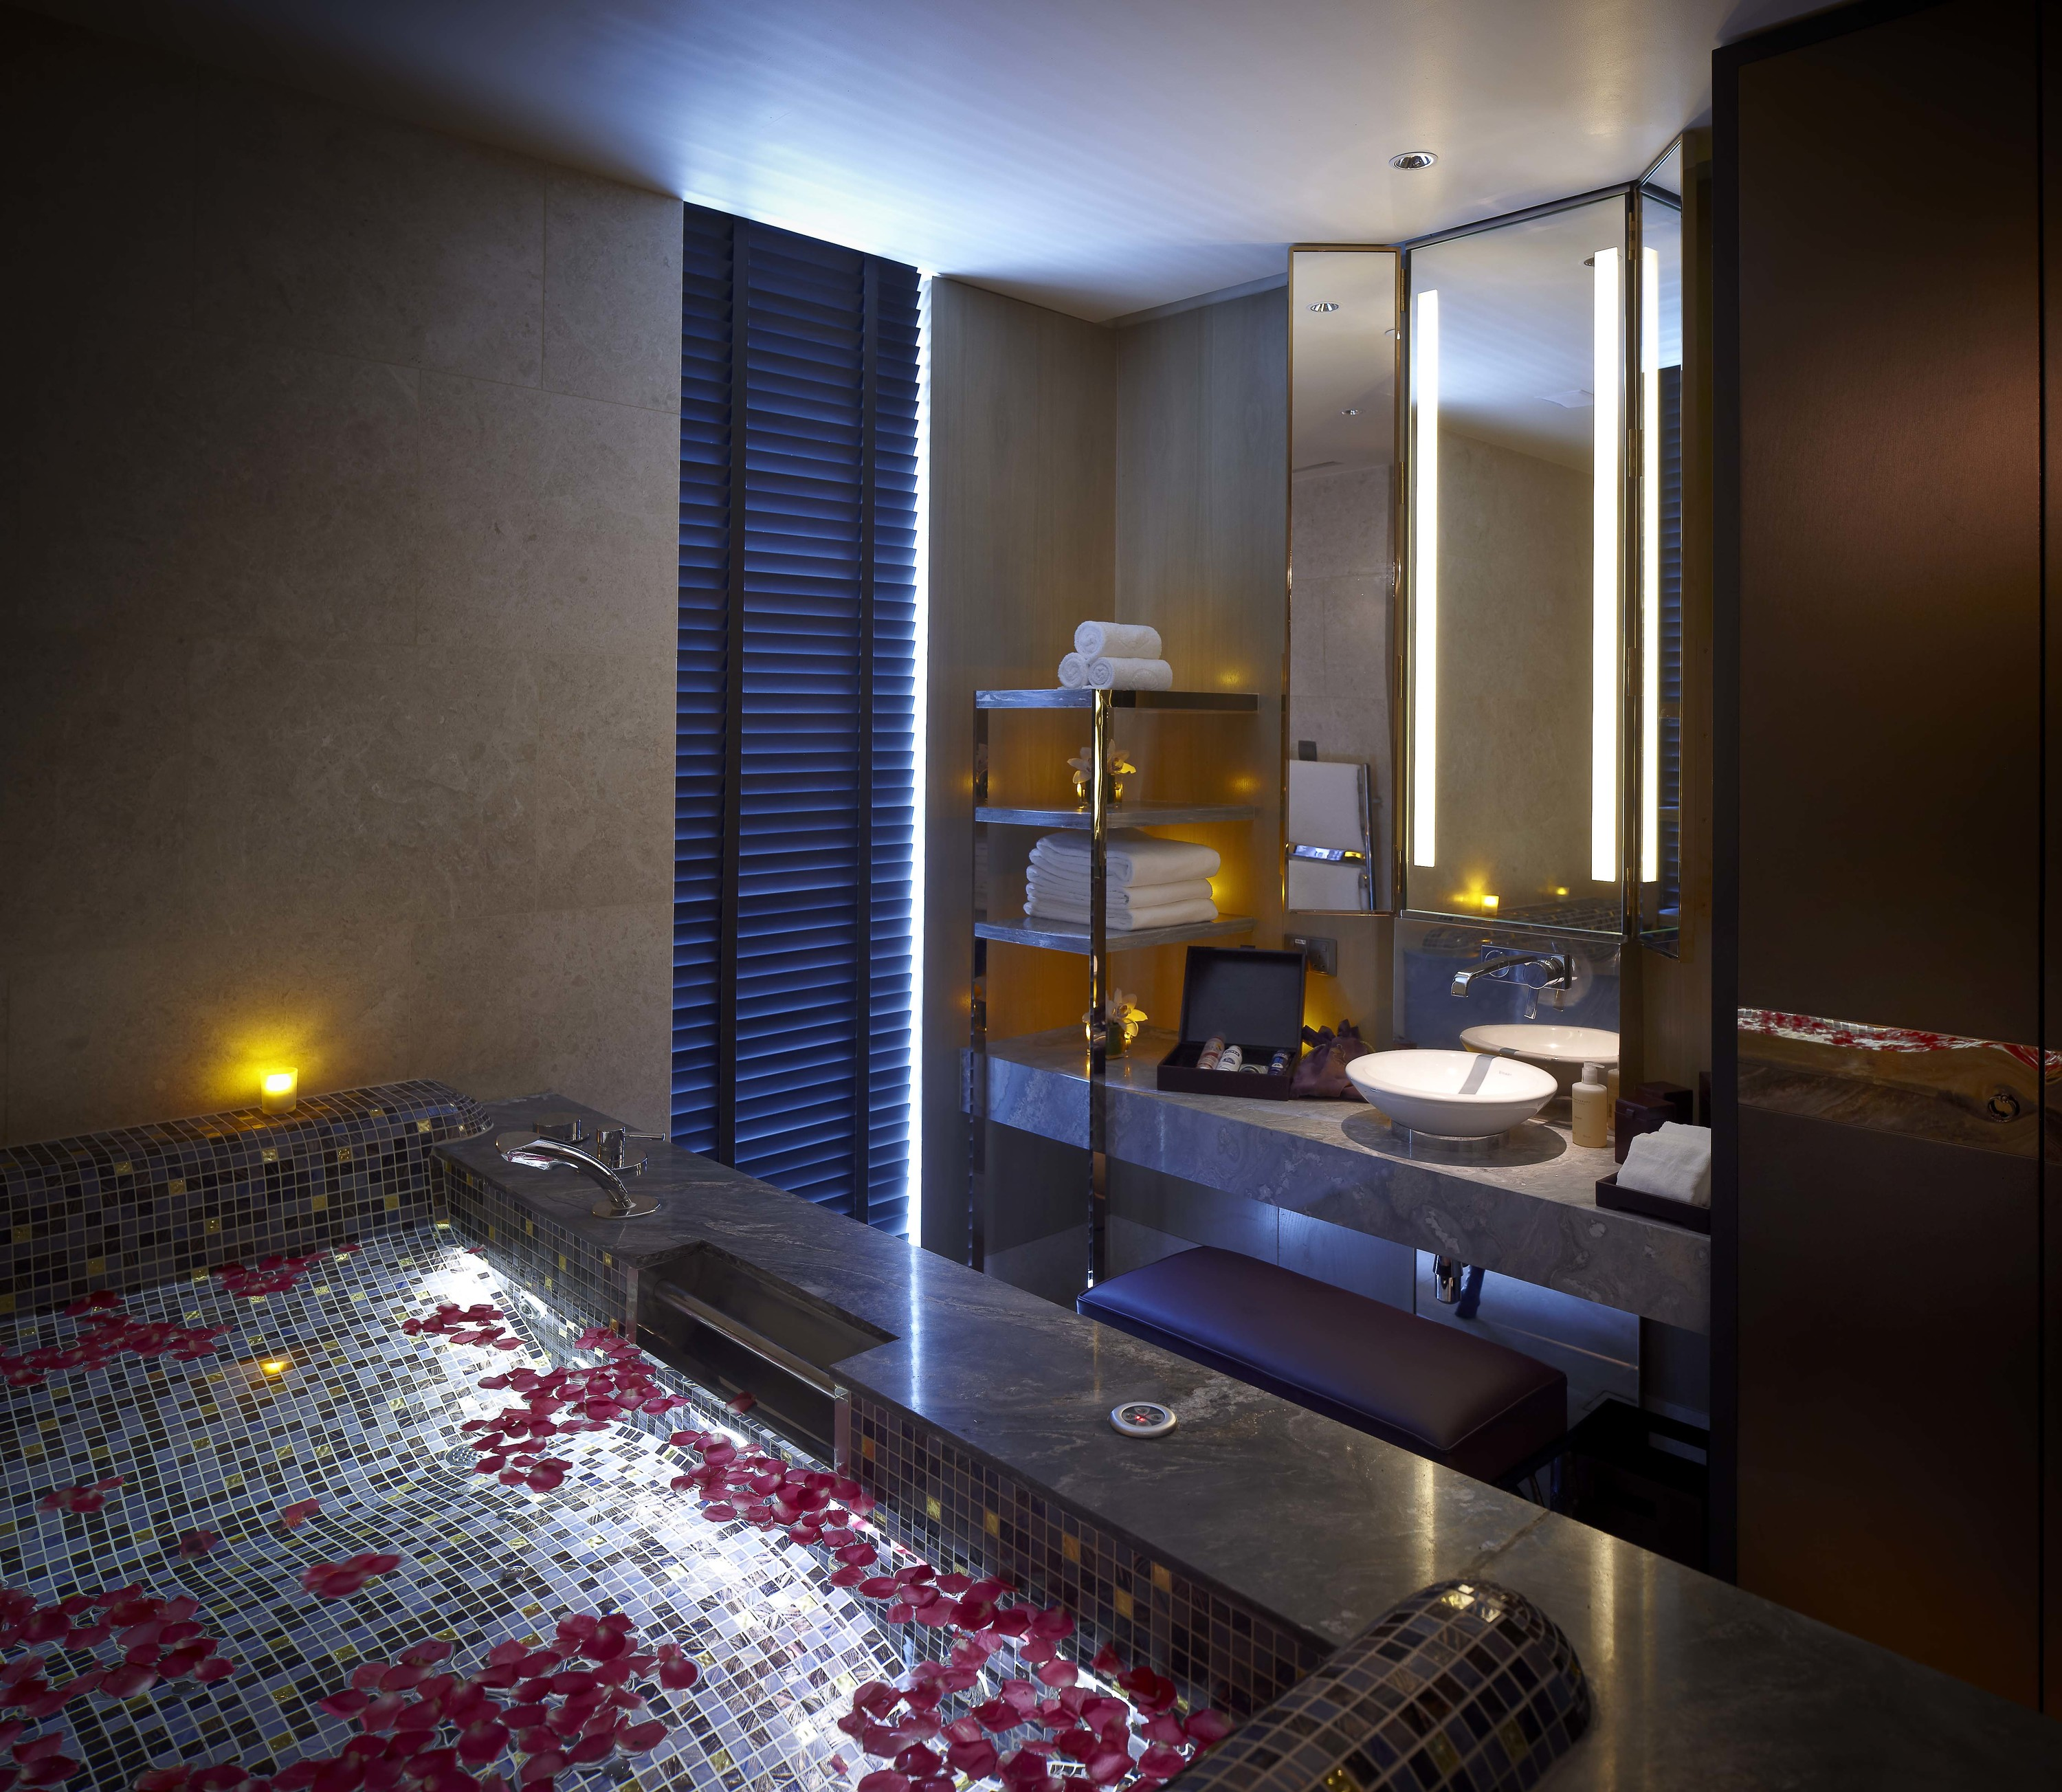 Hotels In Paris With Jacuzzi Bath